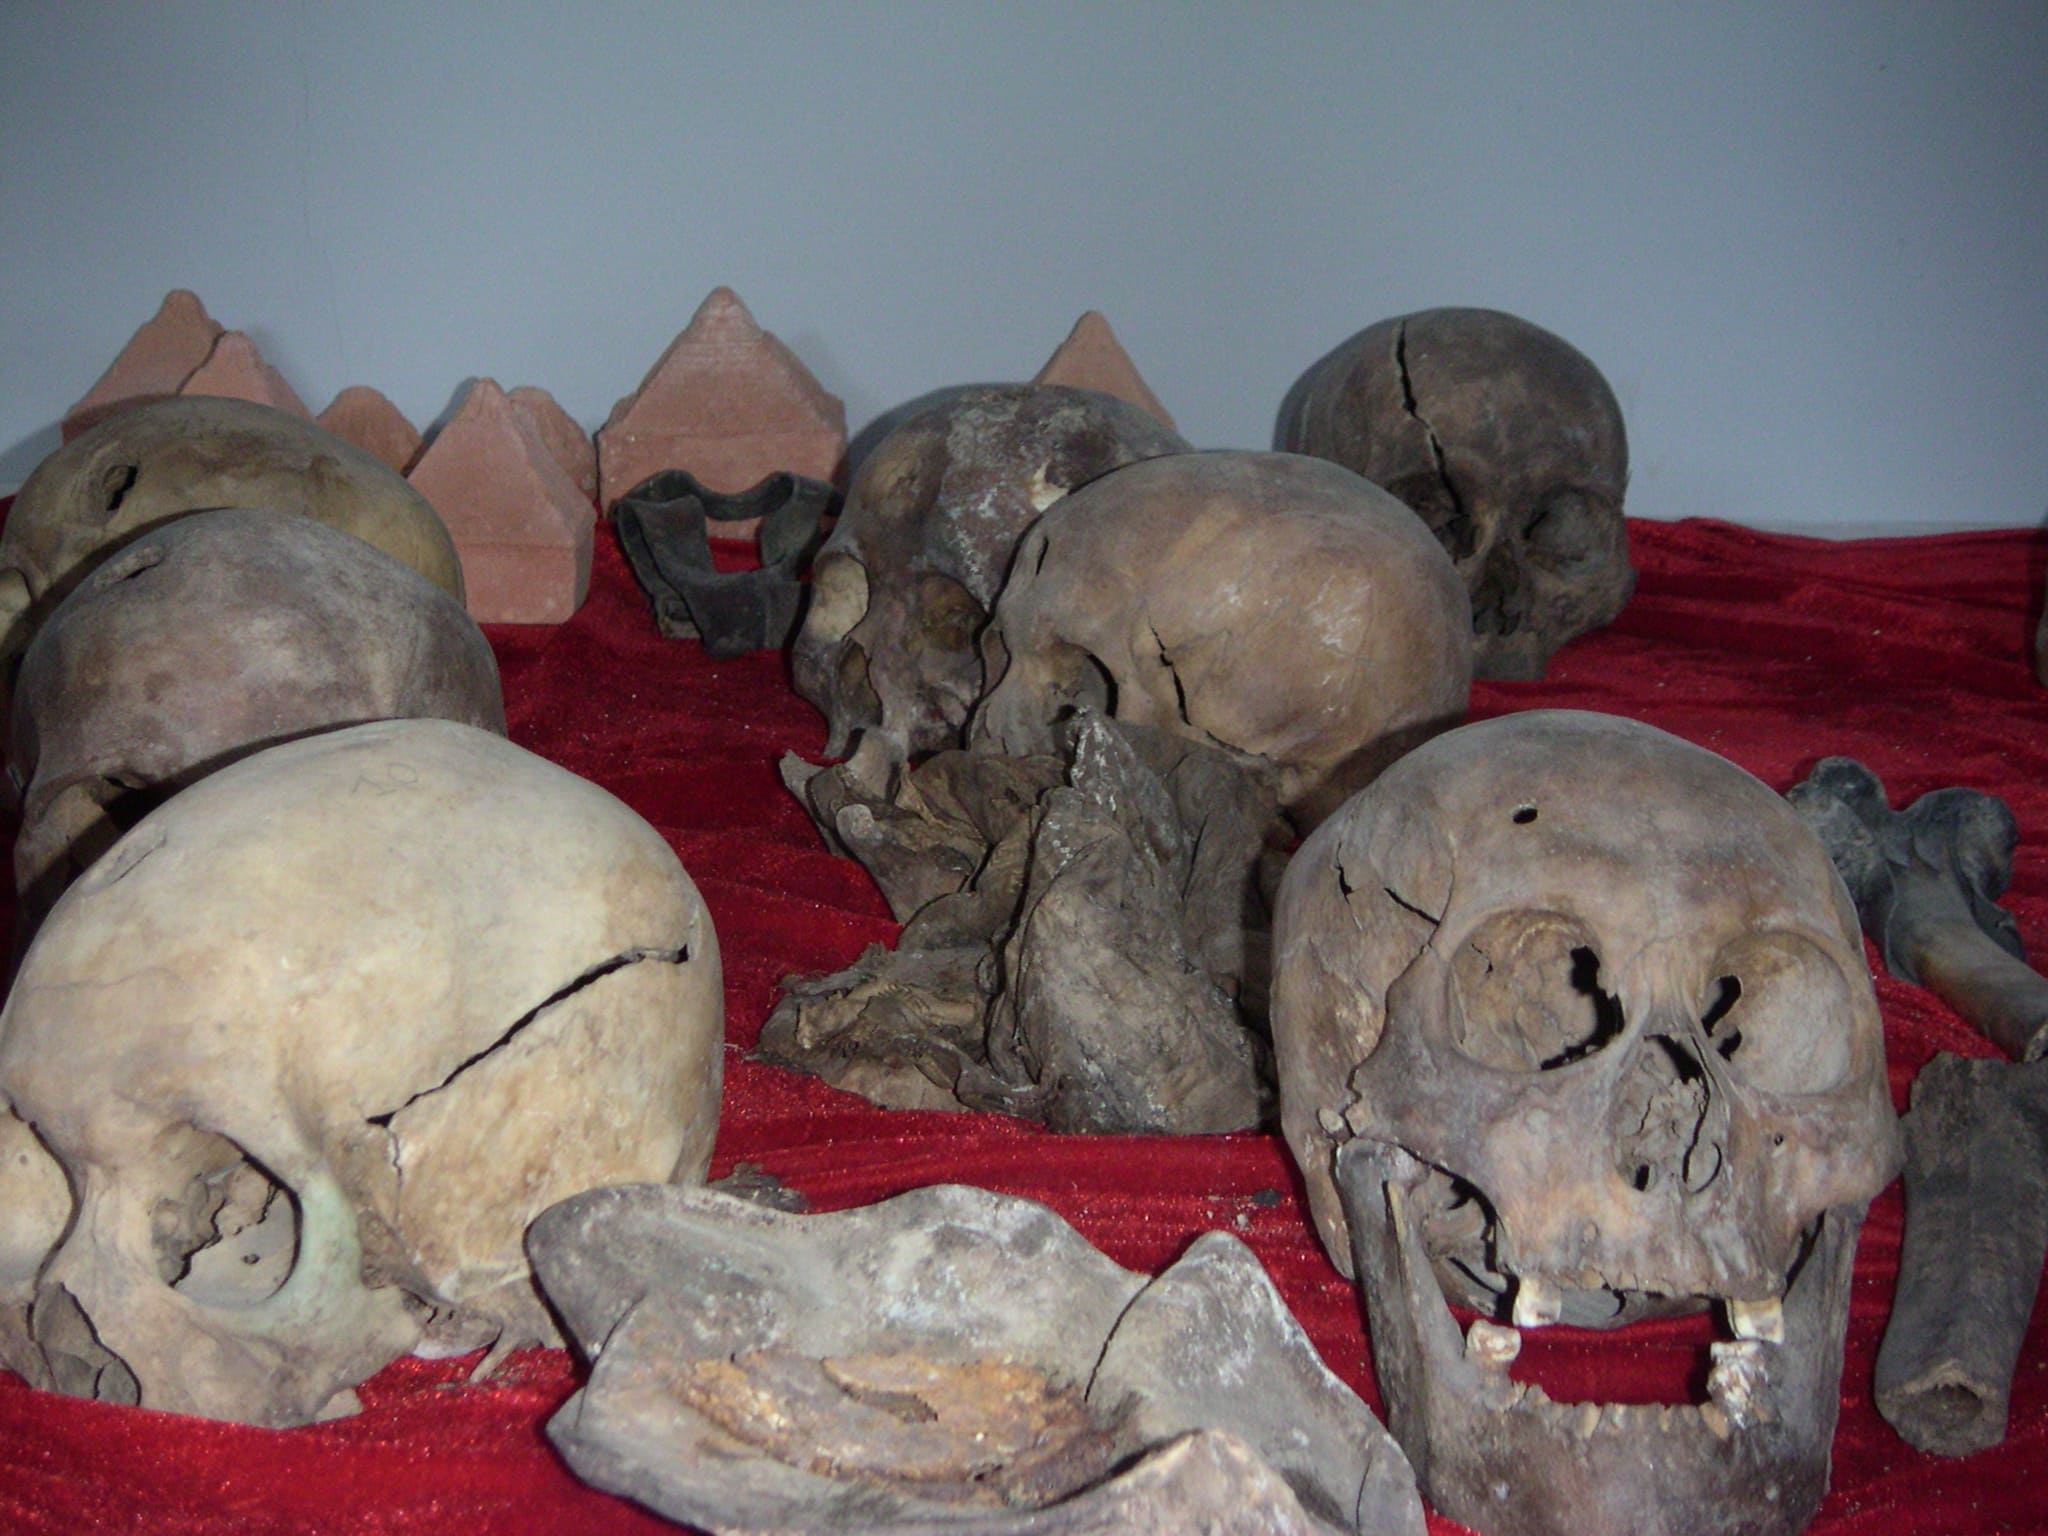 Bones of monks from mass graves at the (now closed) Victims of Political Persecution Memorial Museum in Ulaanbaatar